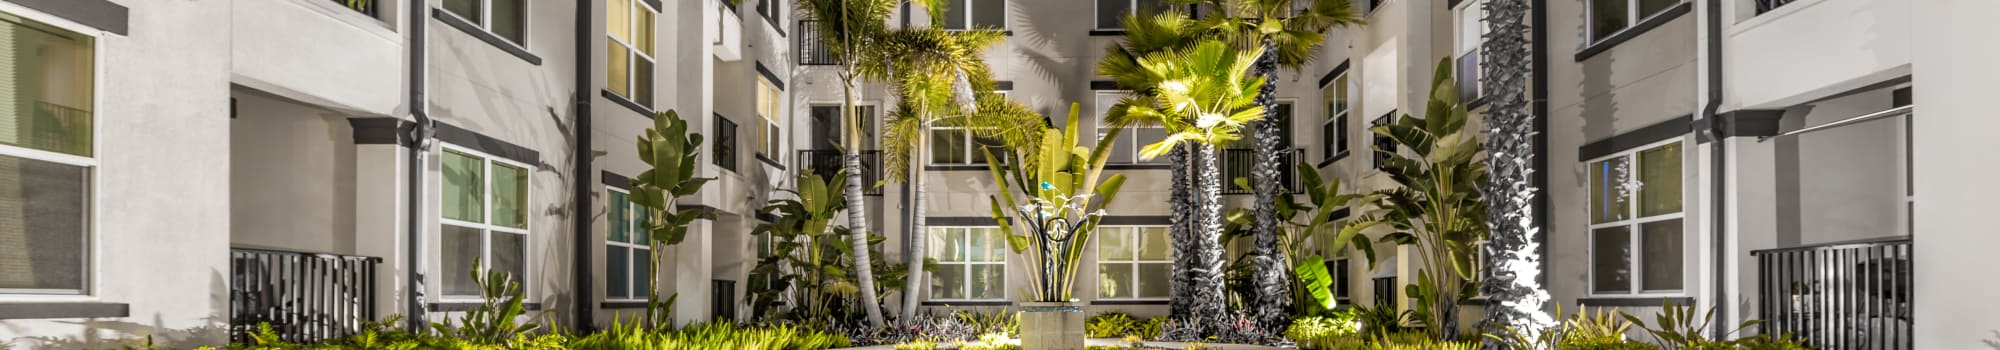 Schedule a Tour at Jefferson Westshore in Tampa, Florida